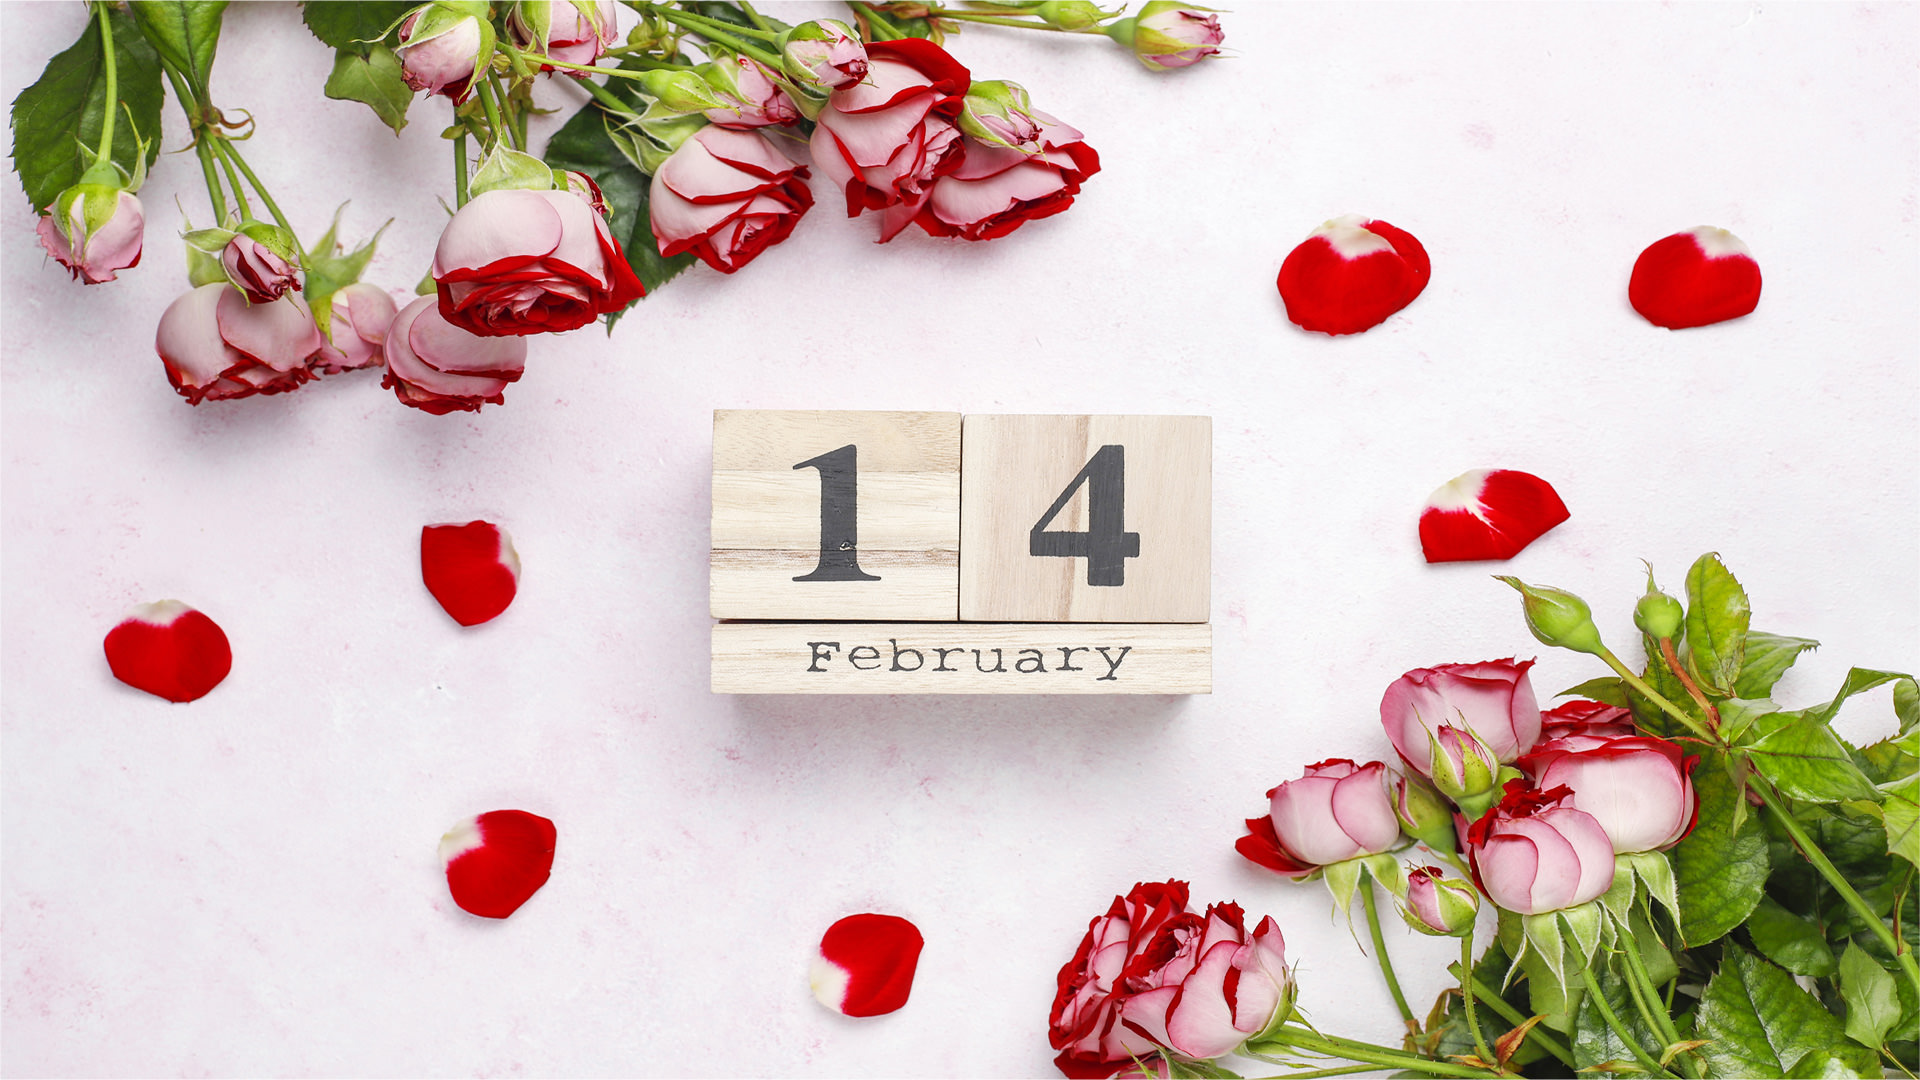 14th Feb Display Wallpaper with Roses